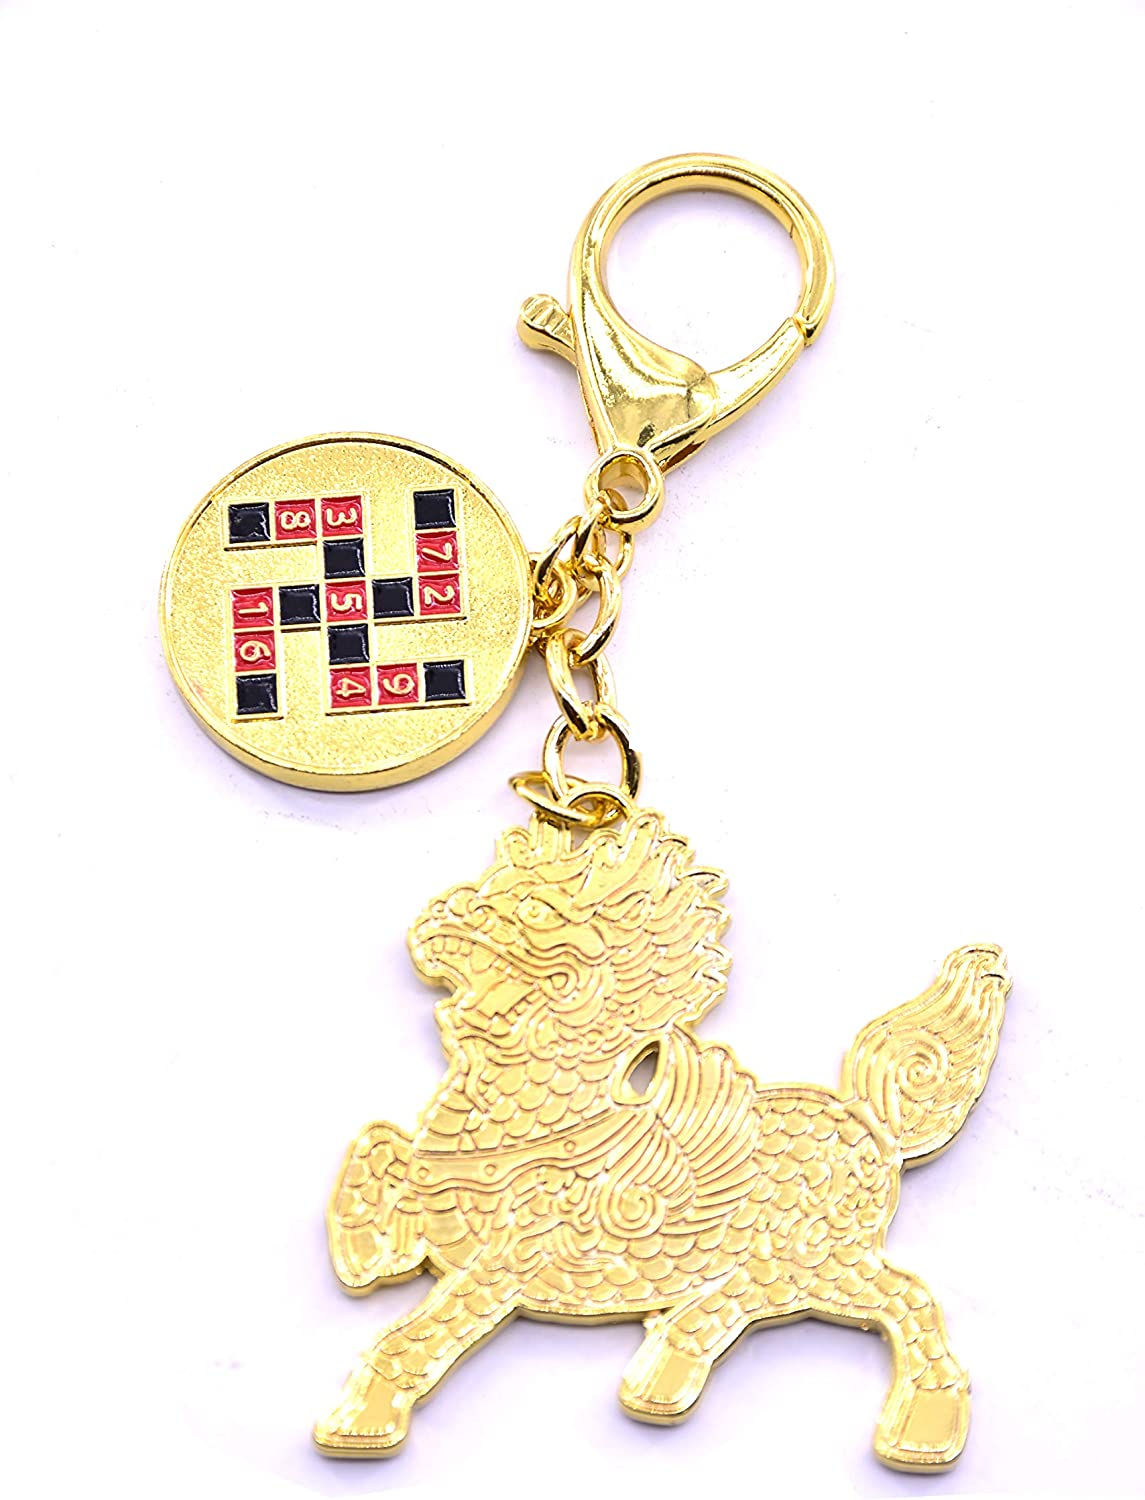 LHR trading inc 2020 Feng Shui Protection and Blessing Coins Amulet Keychain